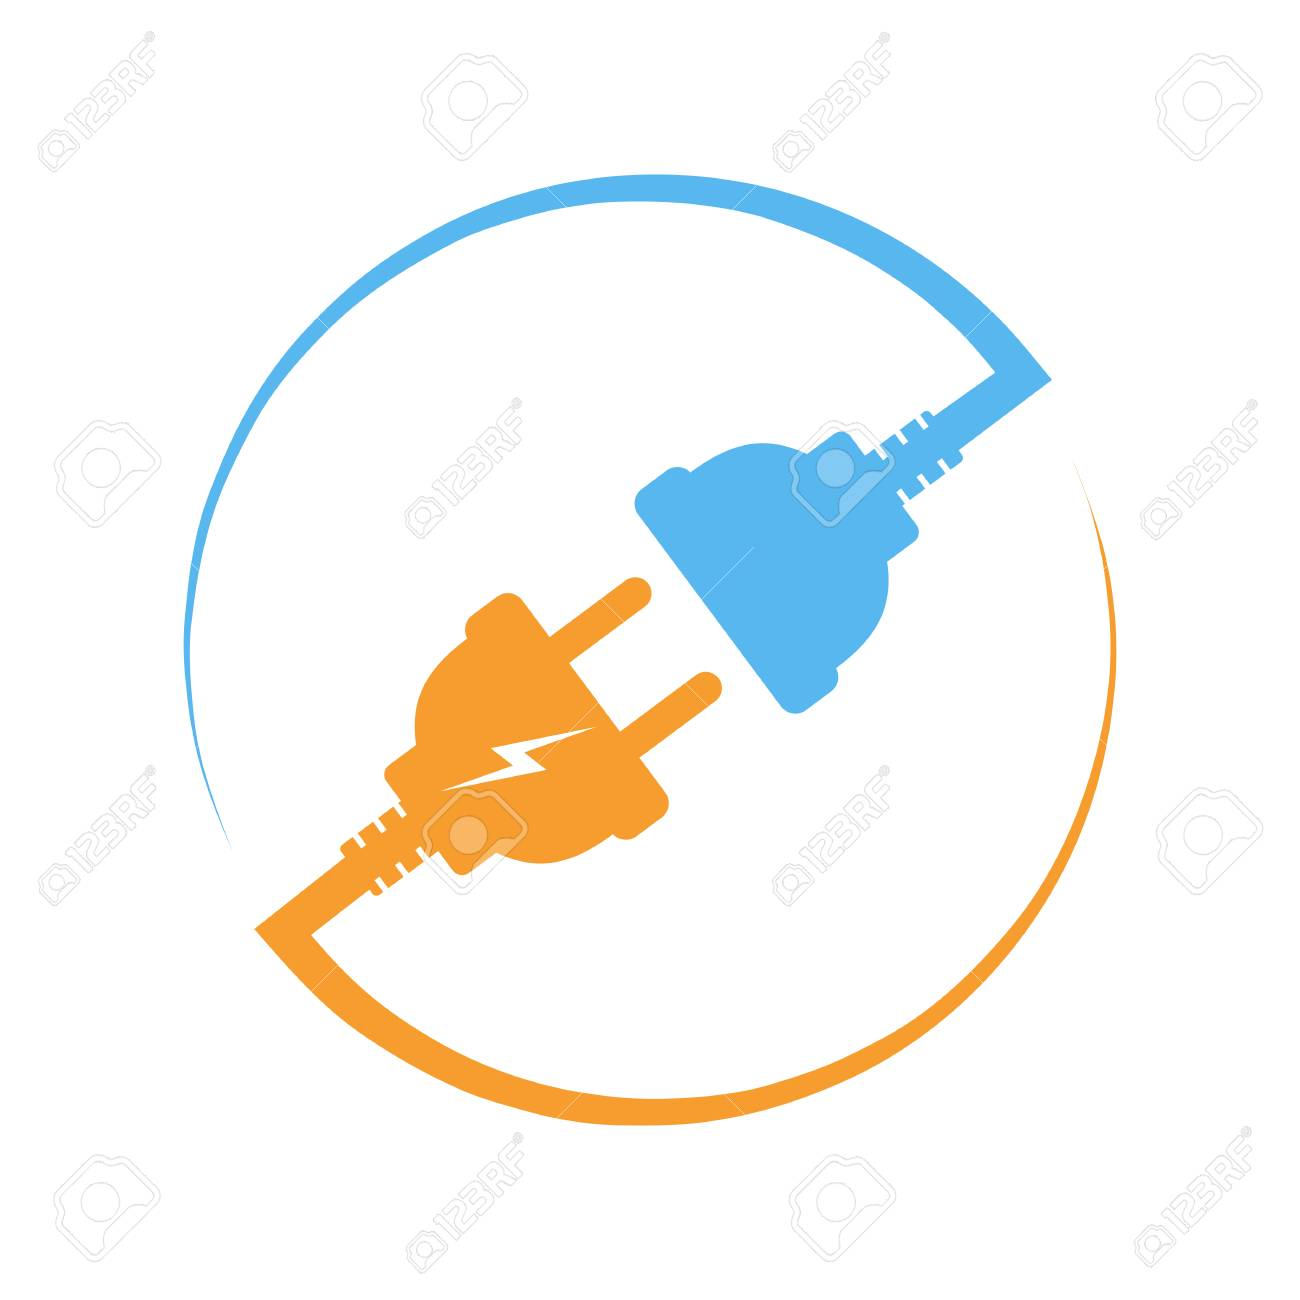 Wire, plug and socket  Vector illustration  Plug and socket in